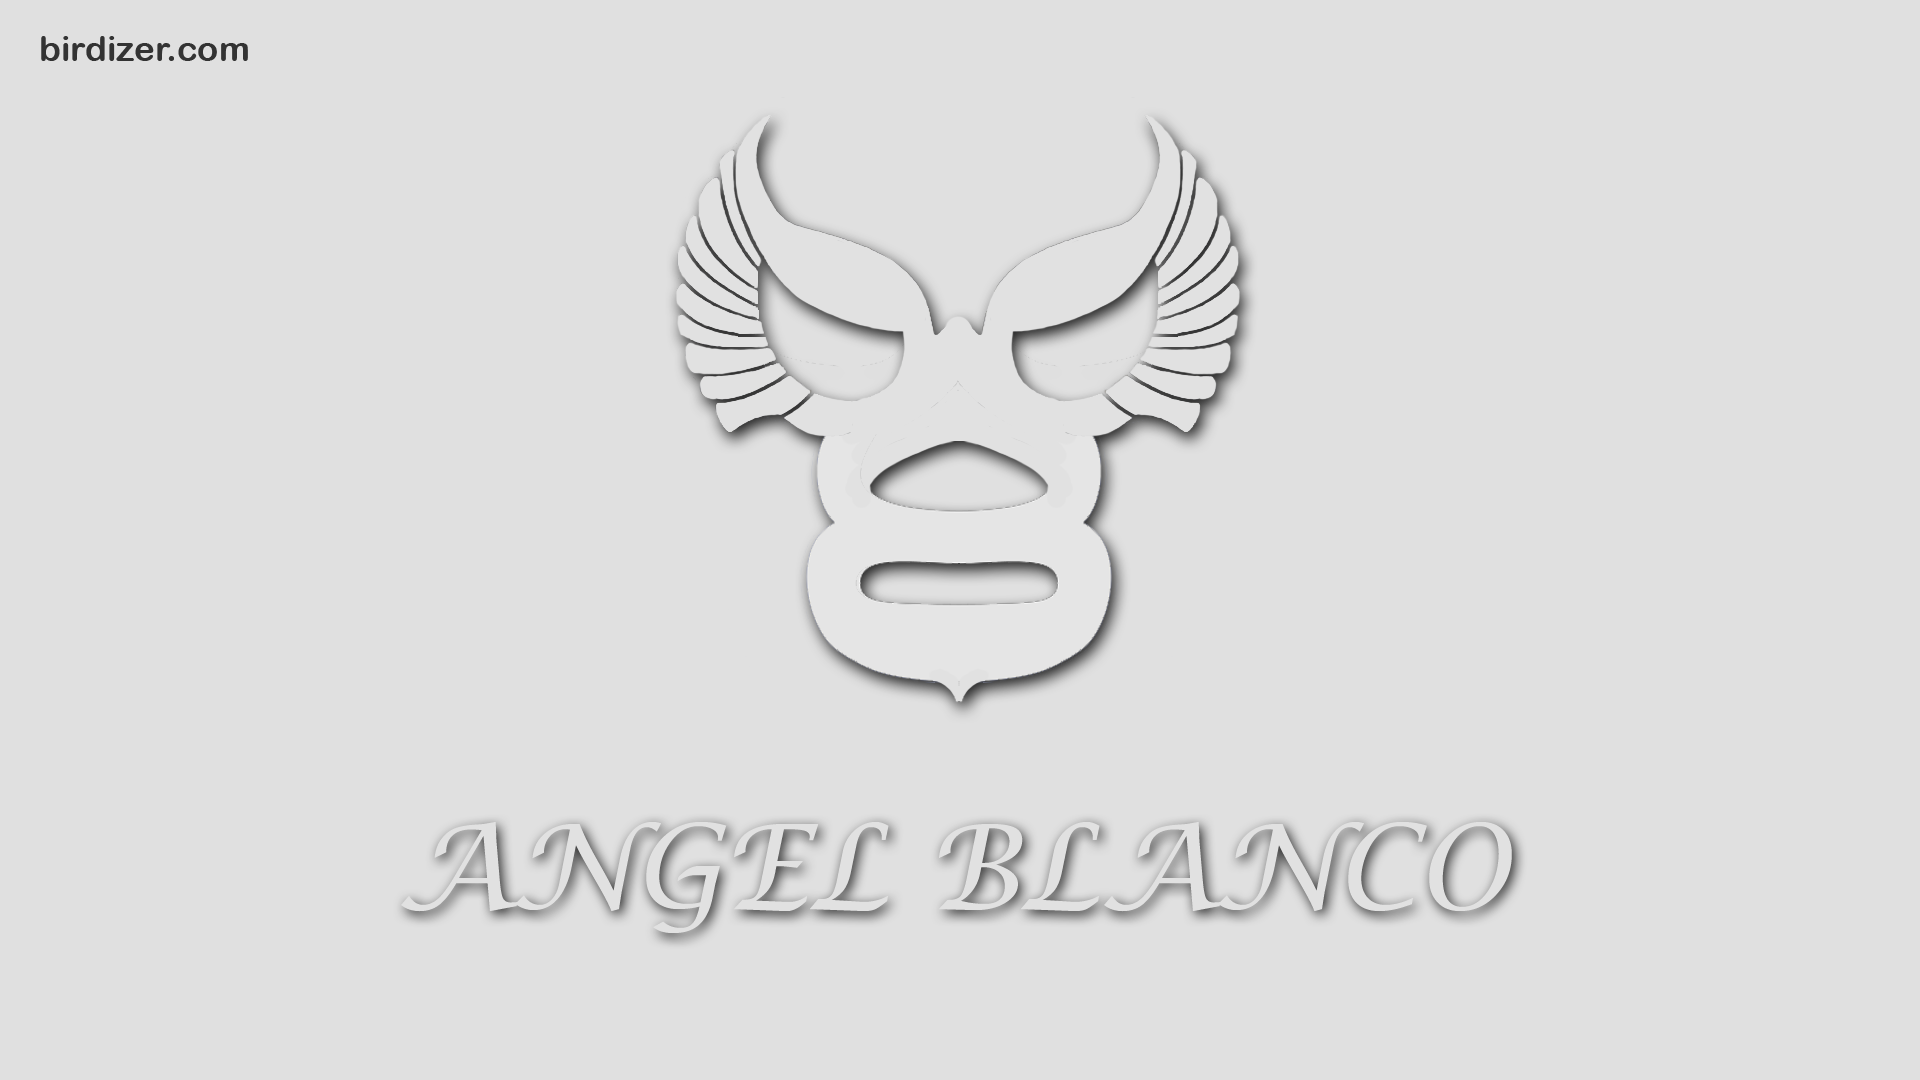 Angel Blanco Mascara Wallpaper